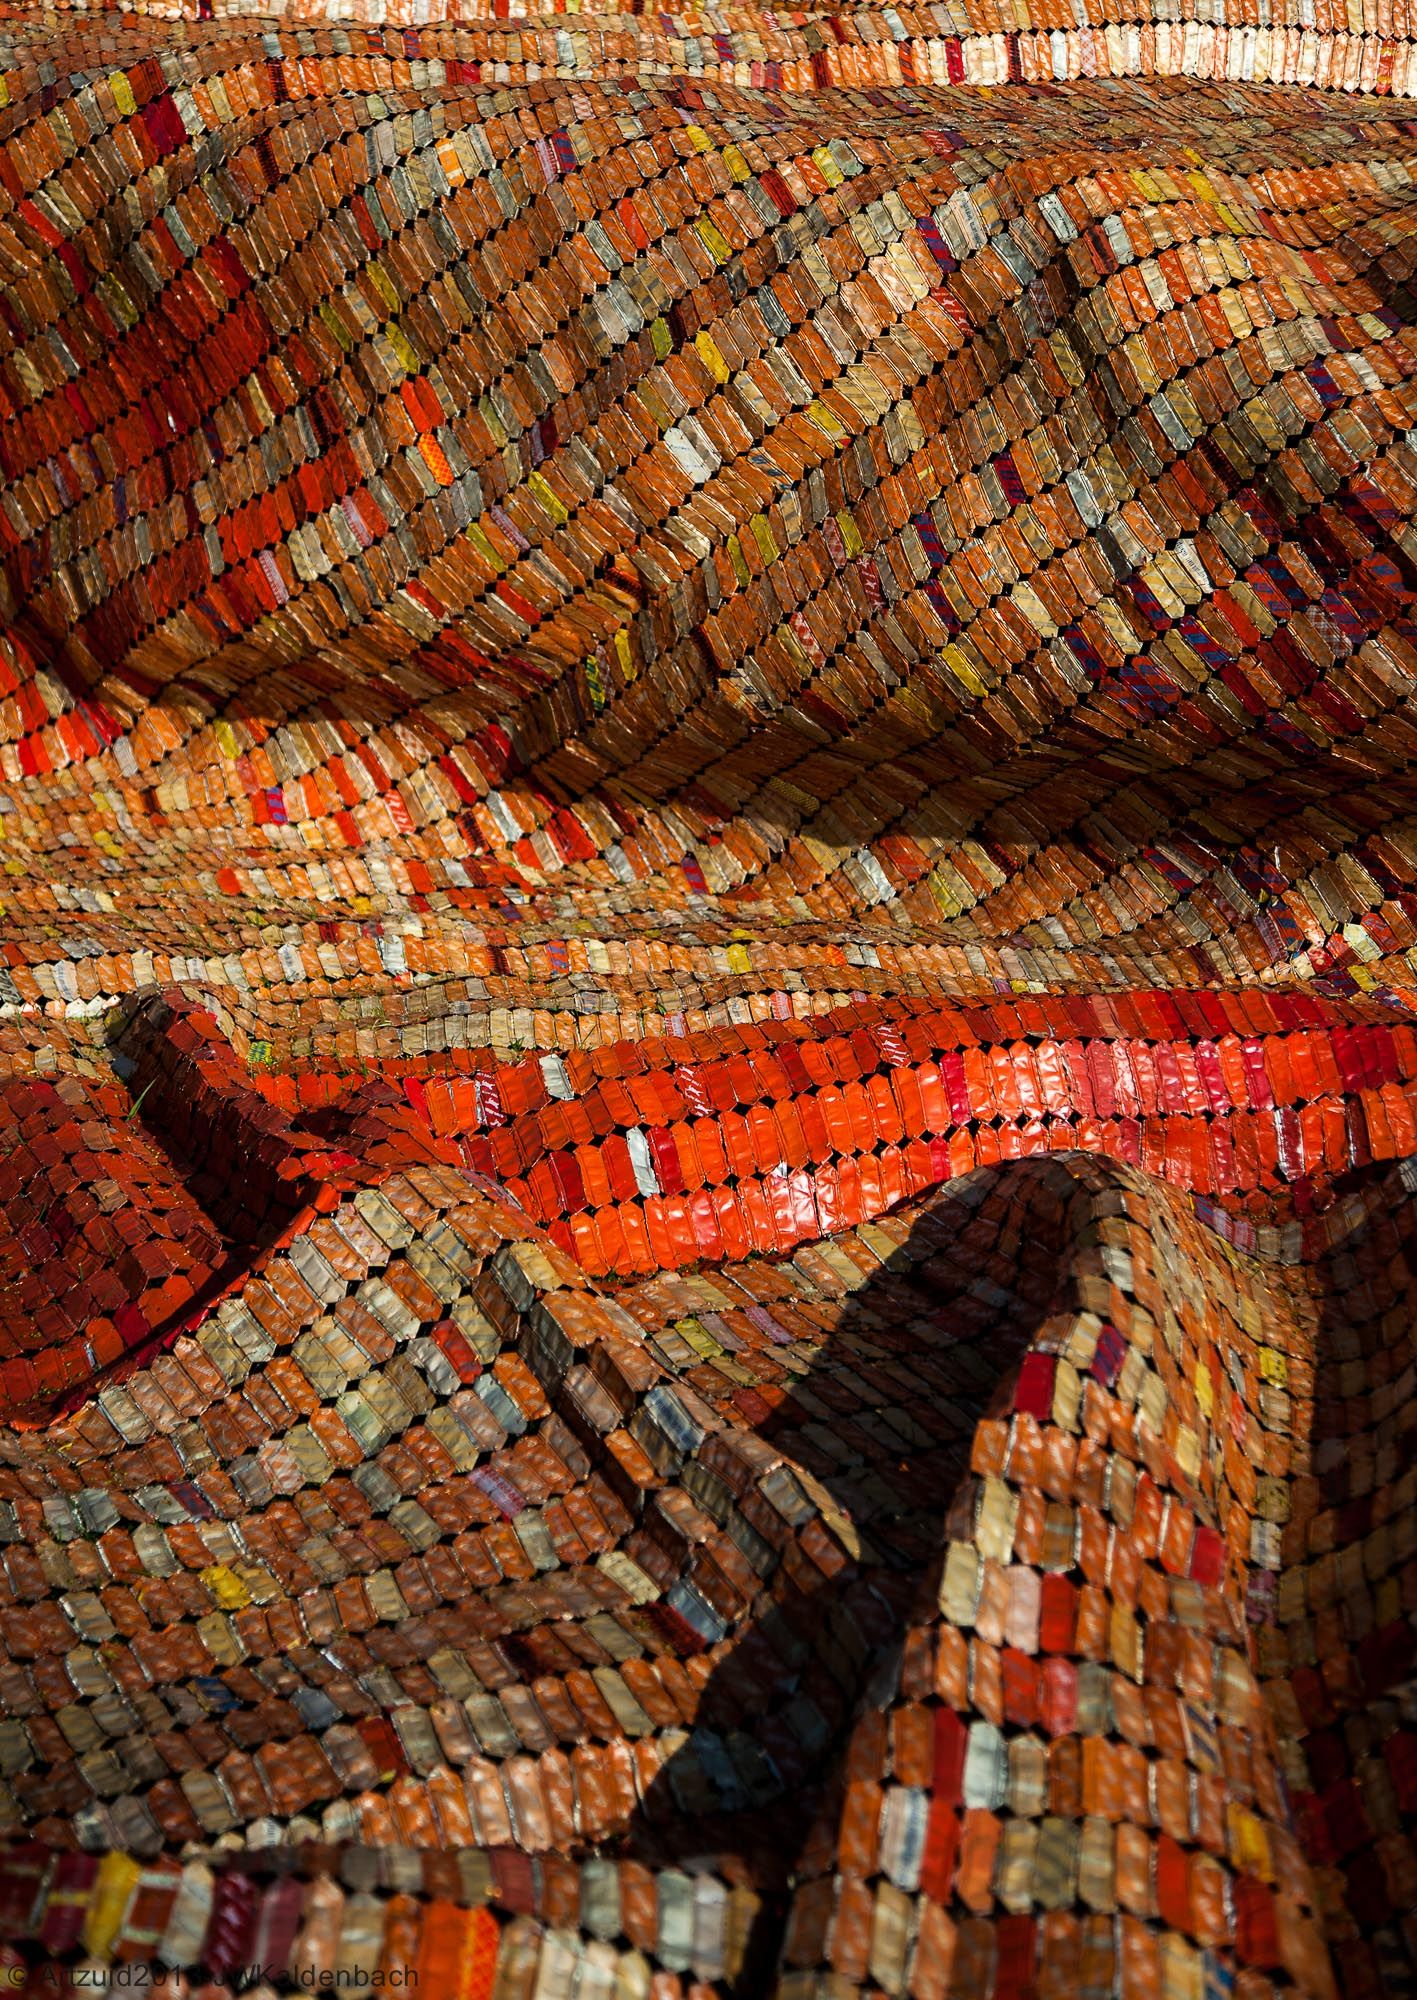 Close-up of El Anatsui's work during ARTZUID 2013